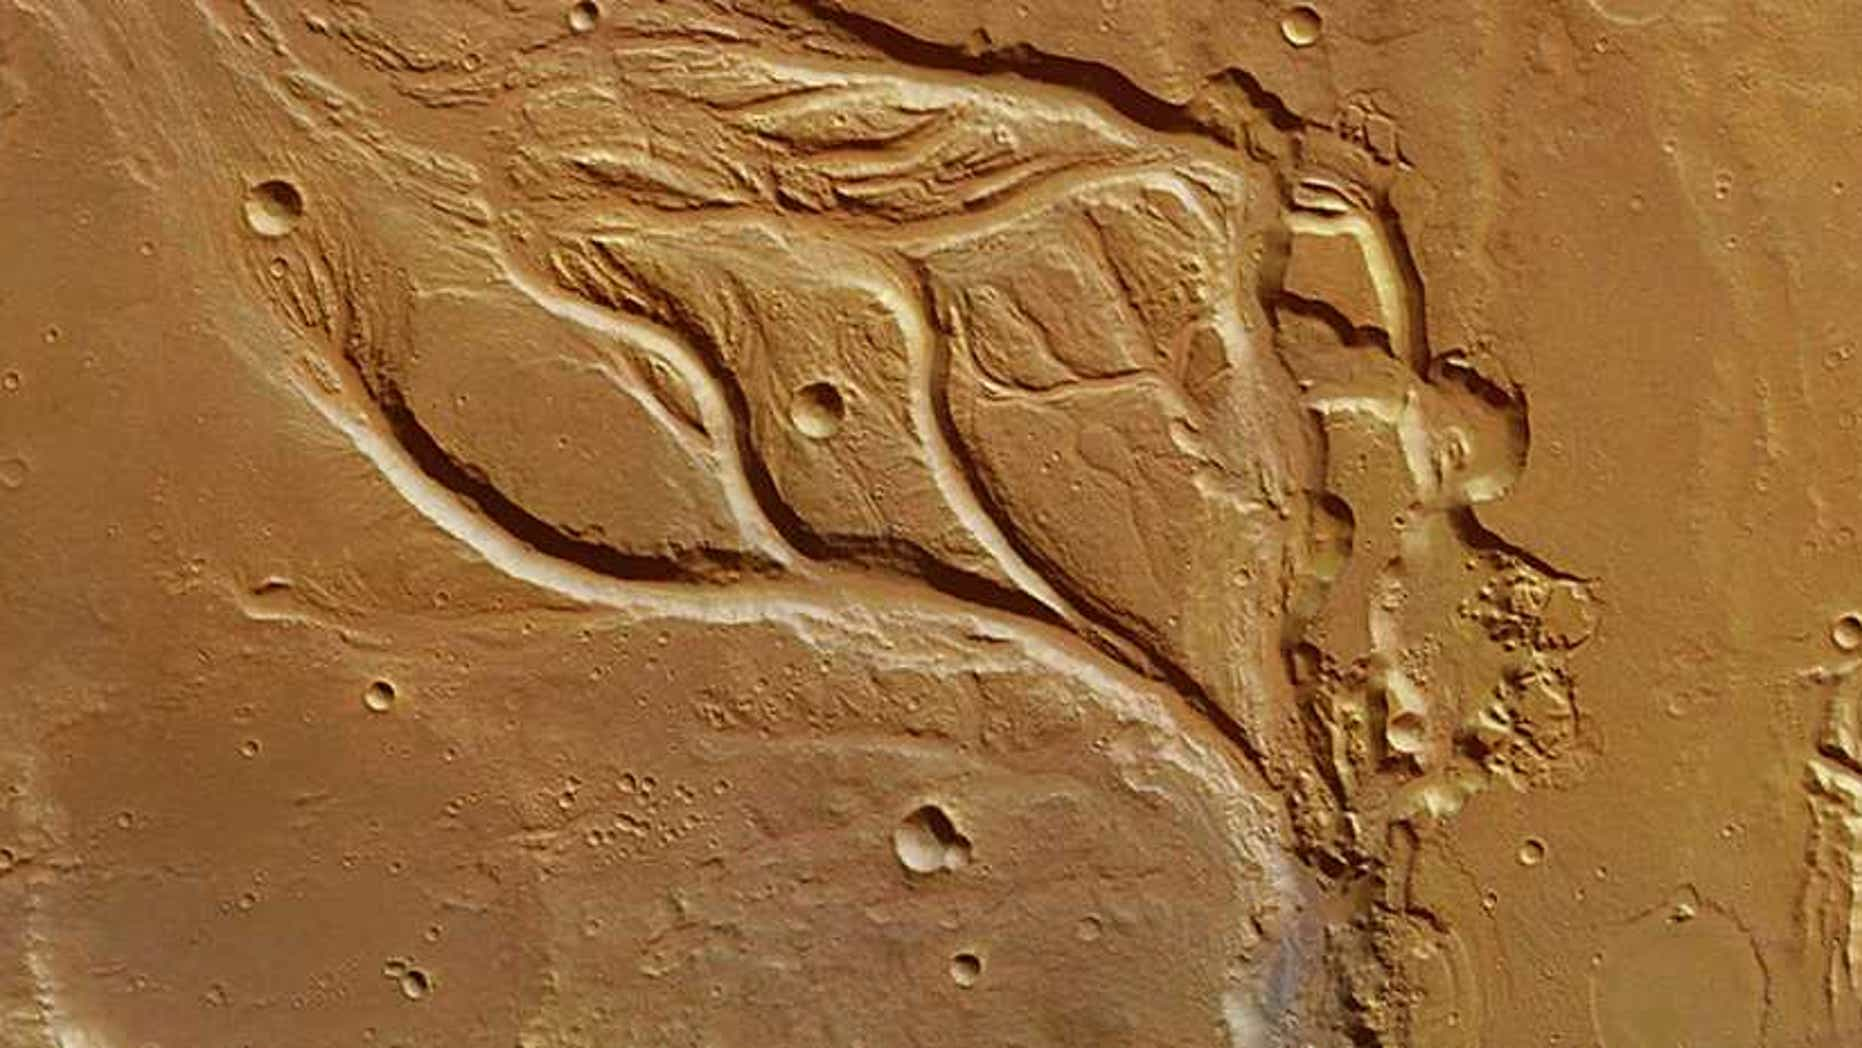 The central portion of Osuga Valles on Mars resembles features found in the arid deserts of Arizona, rather than those formed by emerging groundwater in Florida.